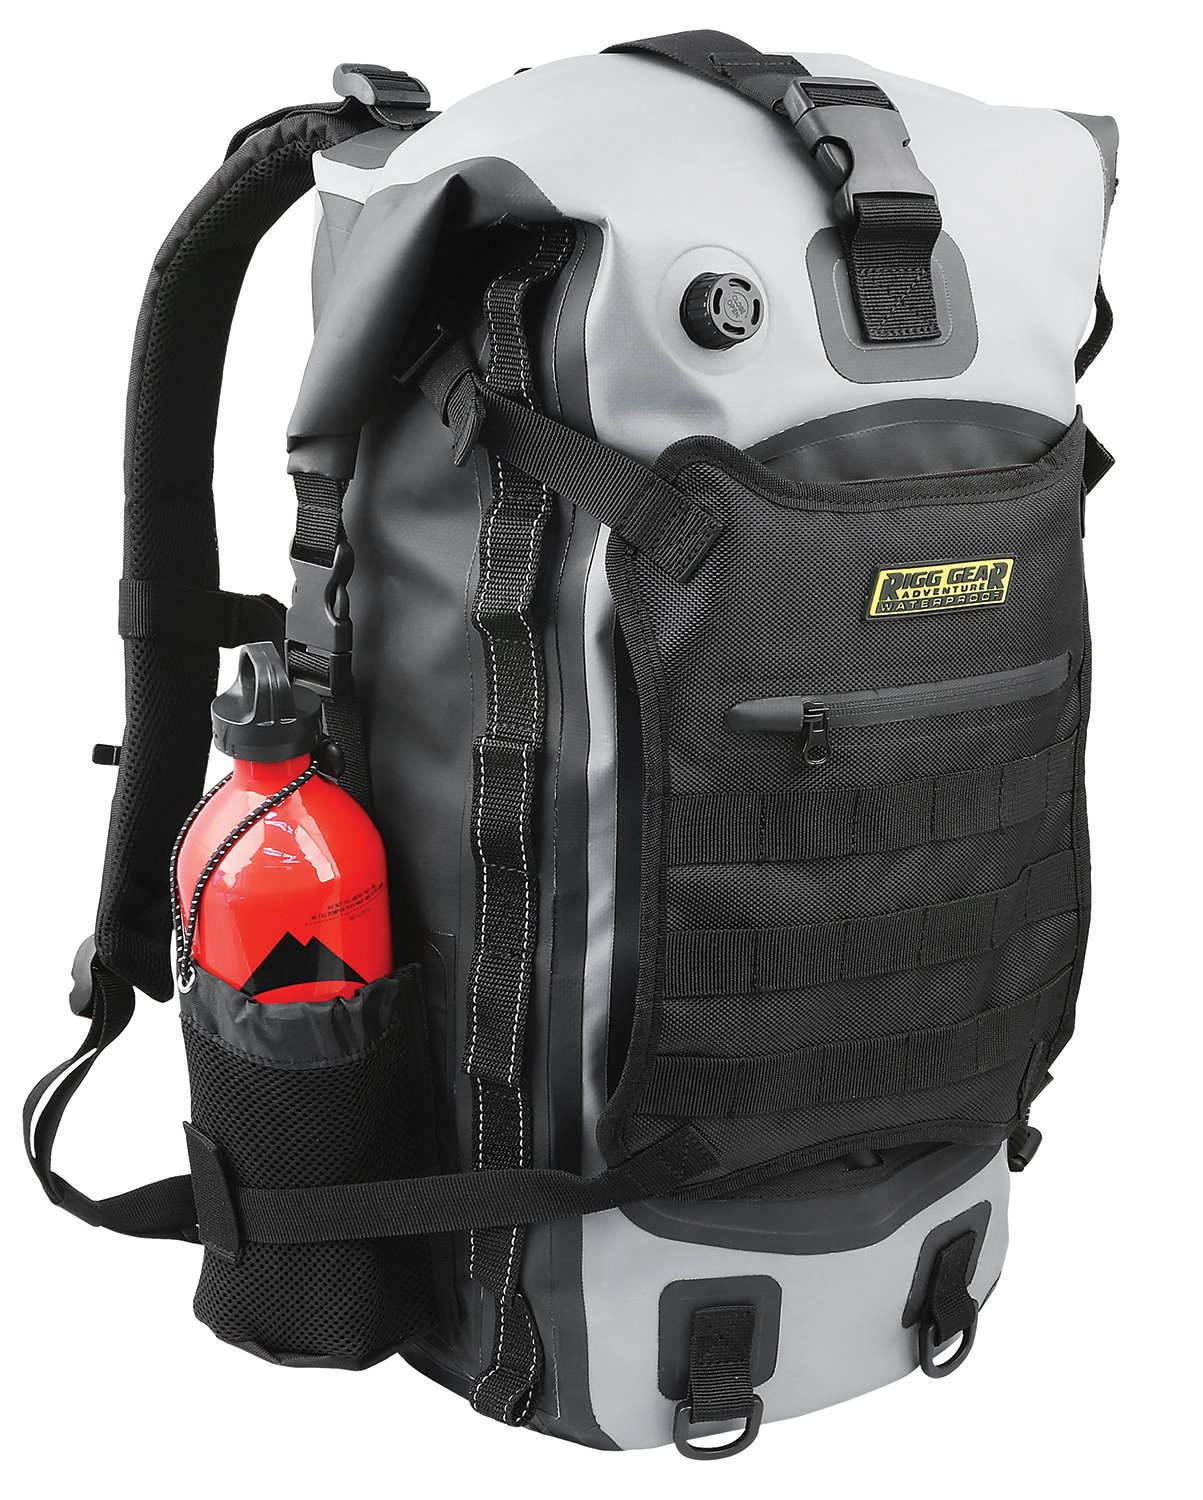 Nelson Rigg SE-3040 40 Liter Gear Hurricane 40L Waterproof Backpack/Tail Pack